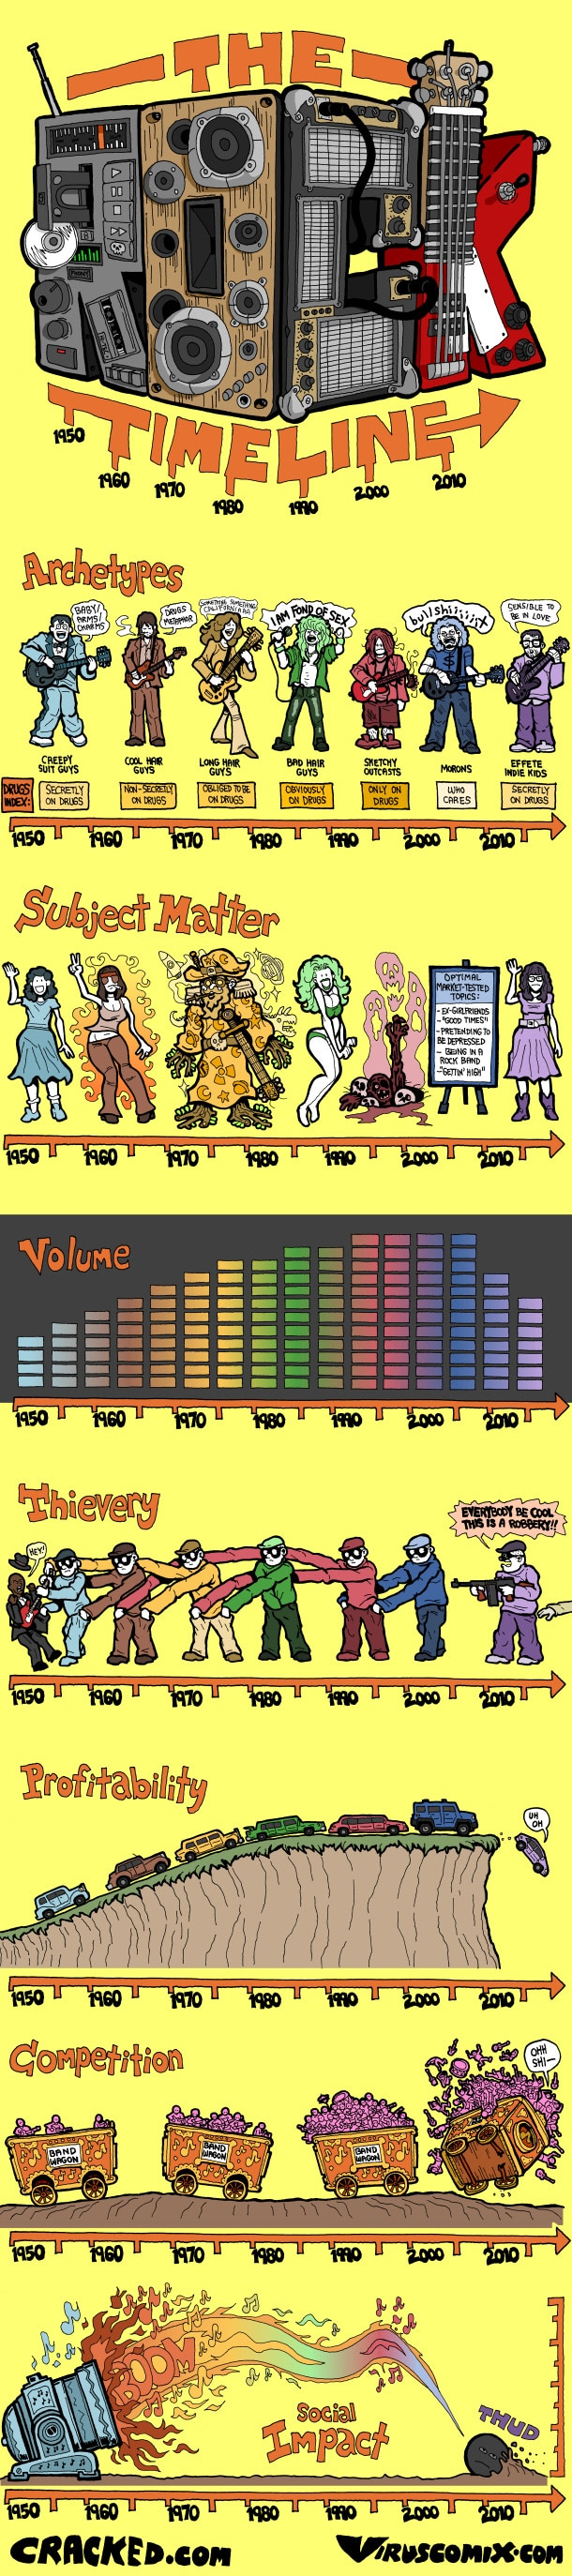 The Hilarious Rock Timeline: From Classic To Modern [Infographic]